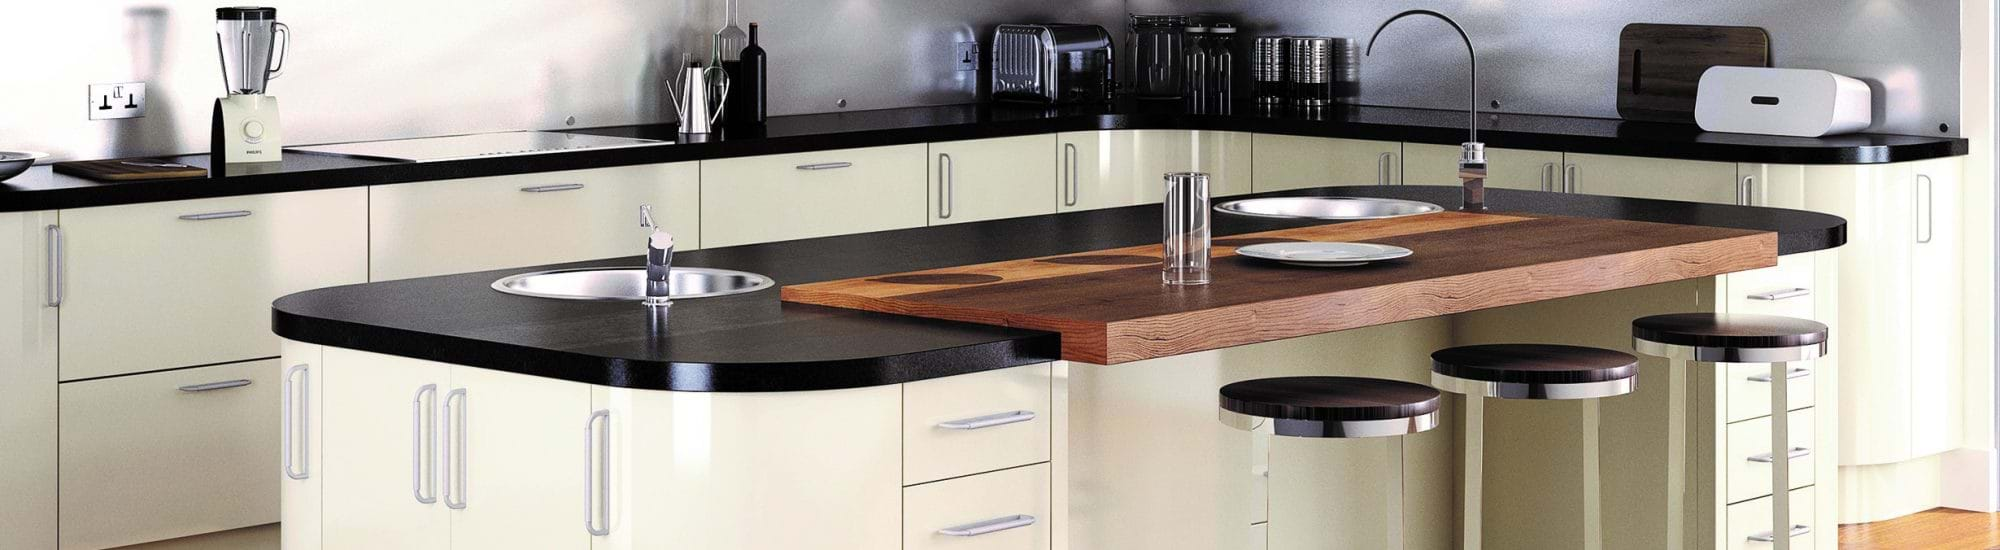 Accessories and Worktops